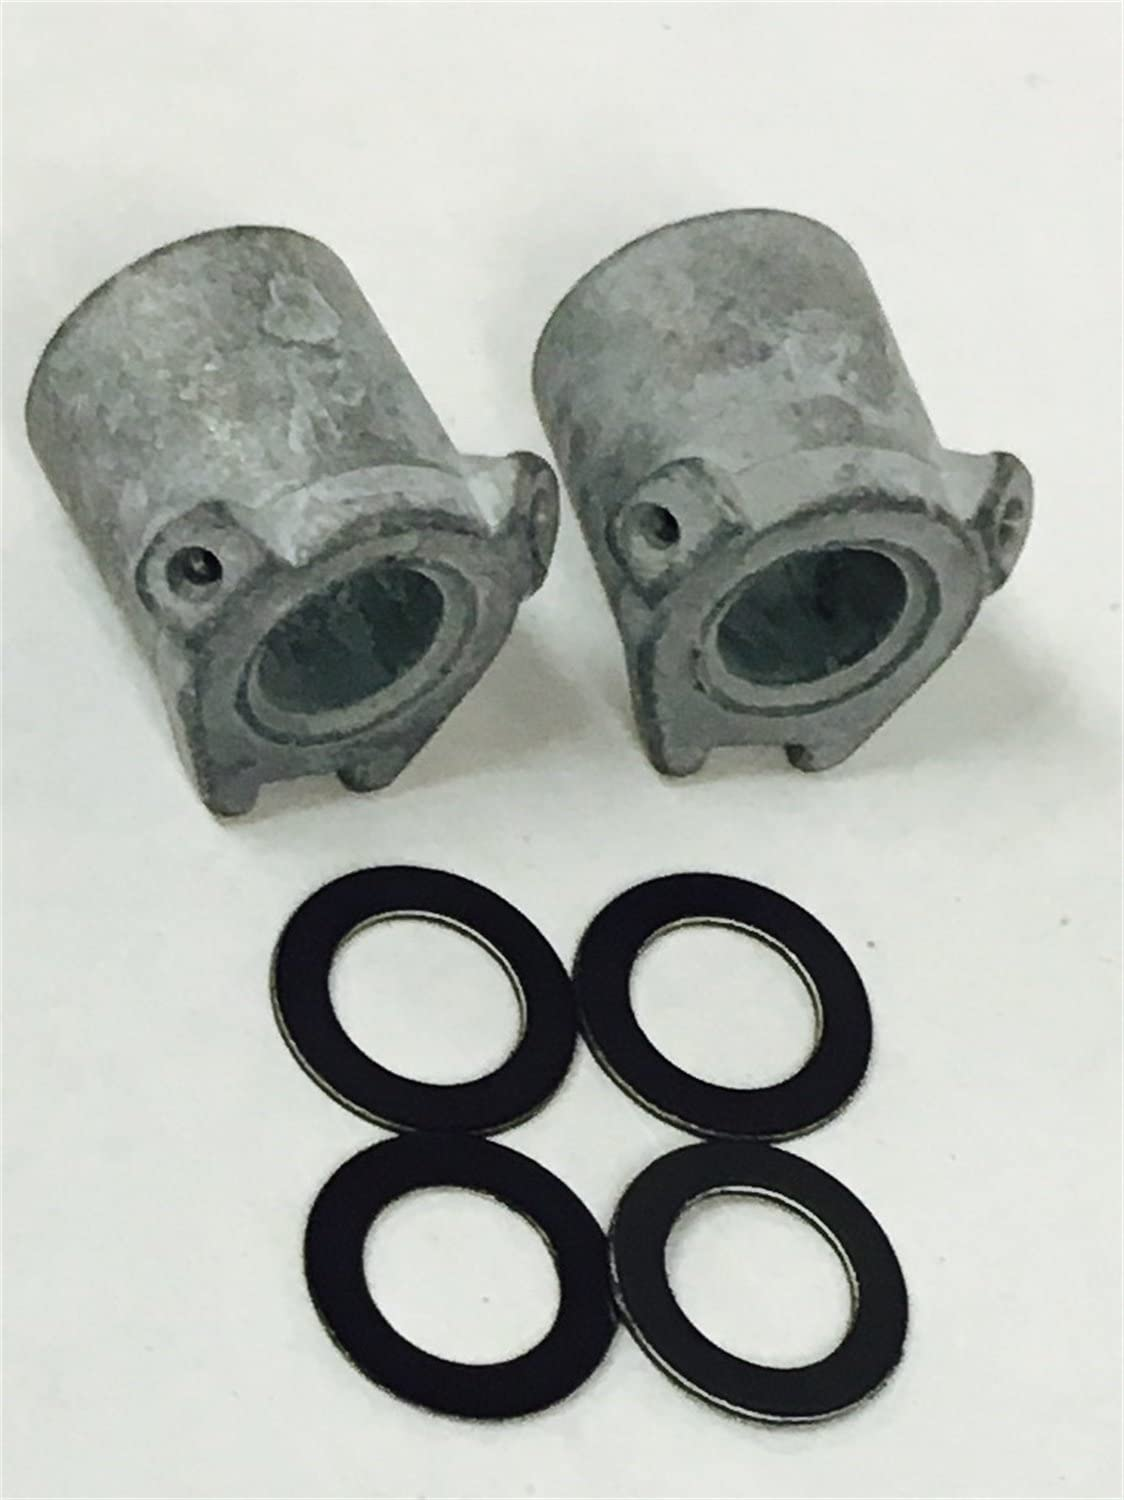 2 Nozzle//4 Gaskets Holley Performance 121-37 Accelerator Pump Discharge Nozzle